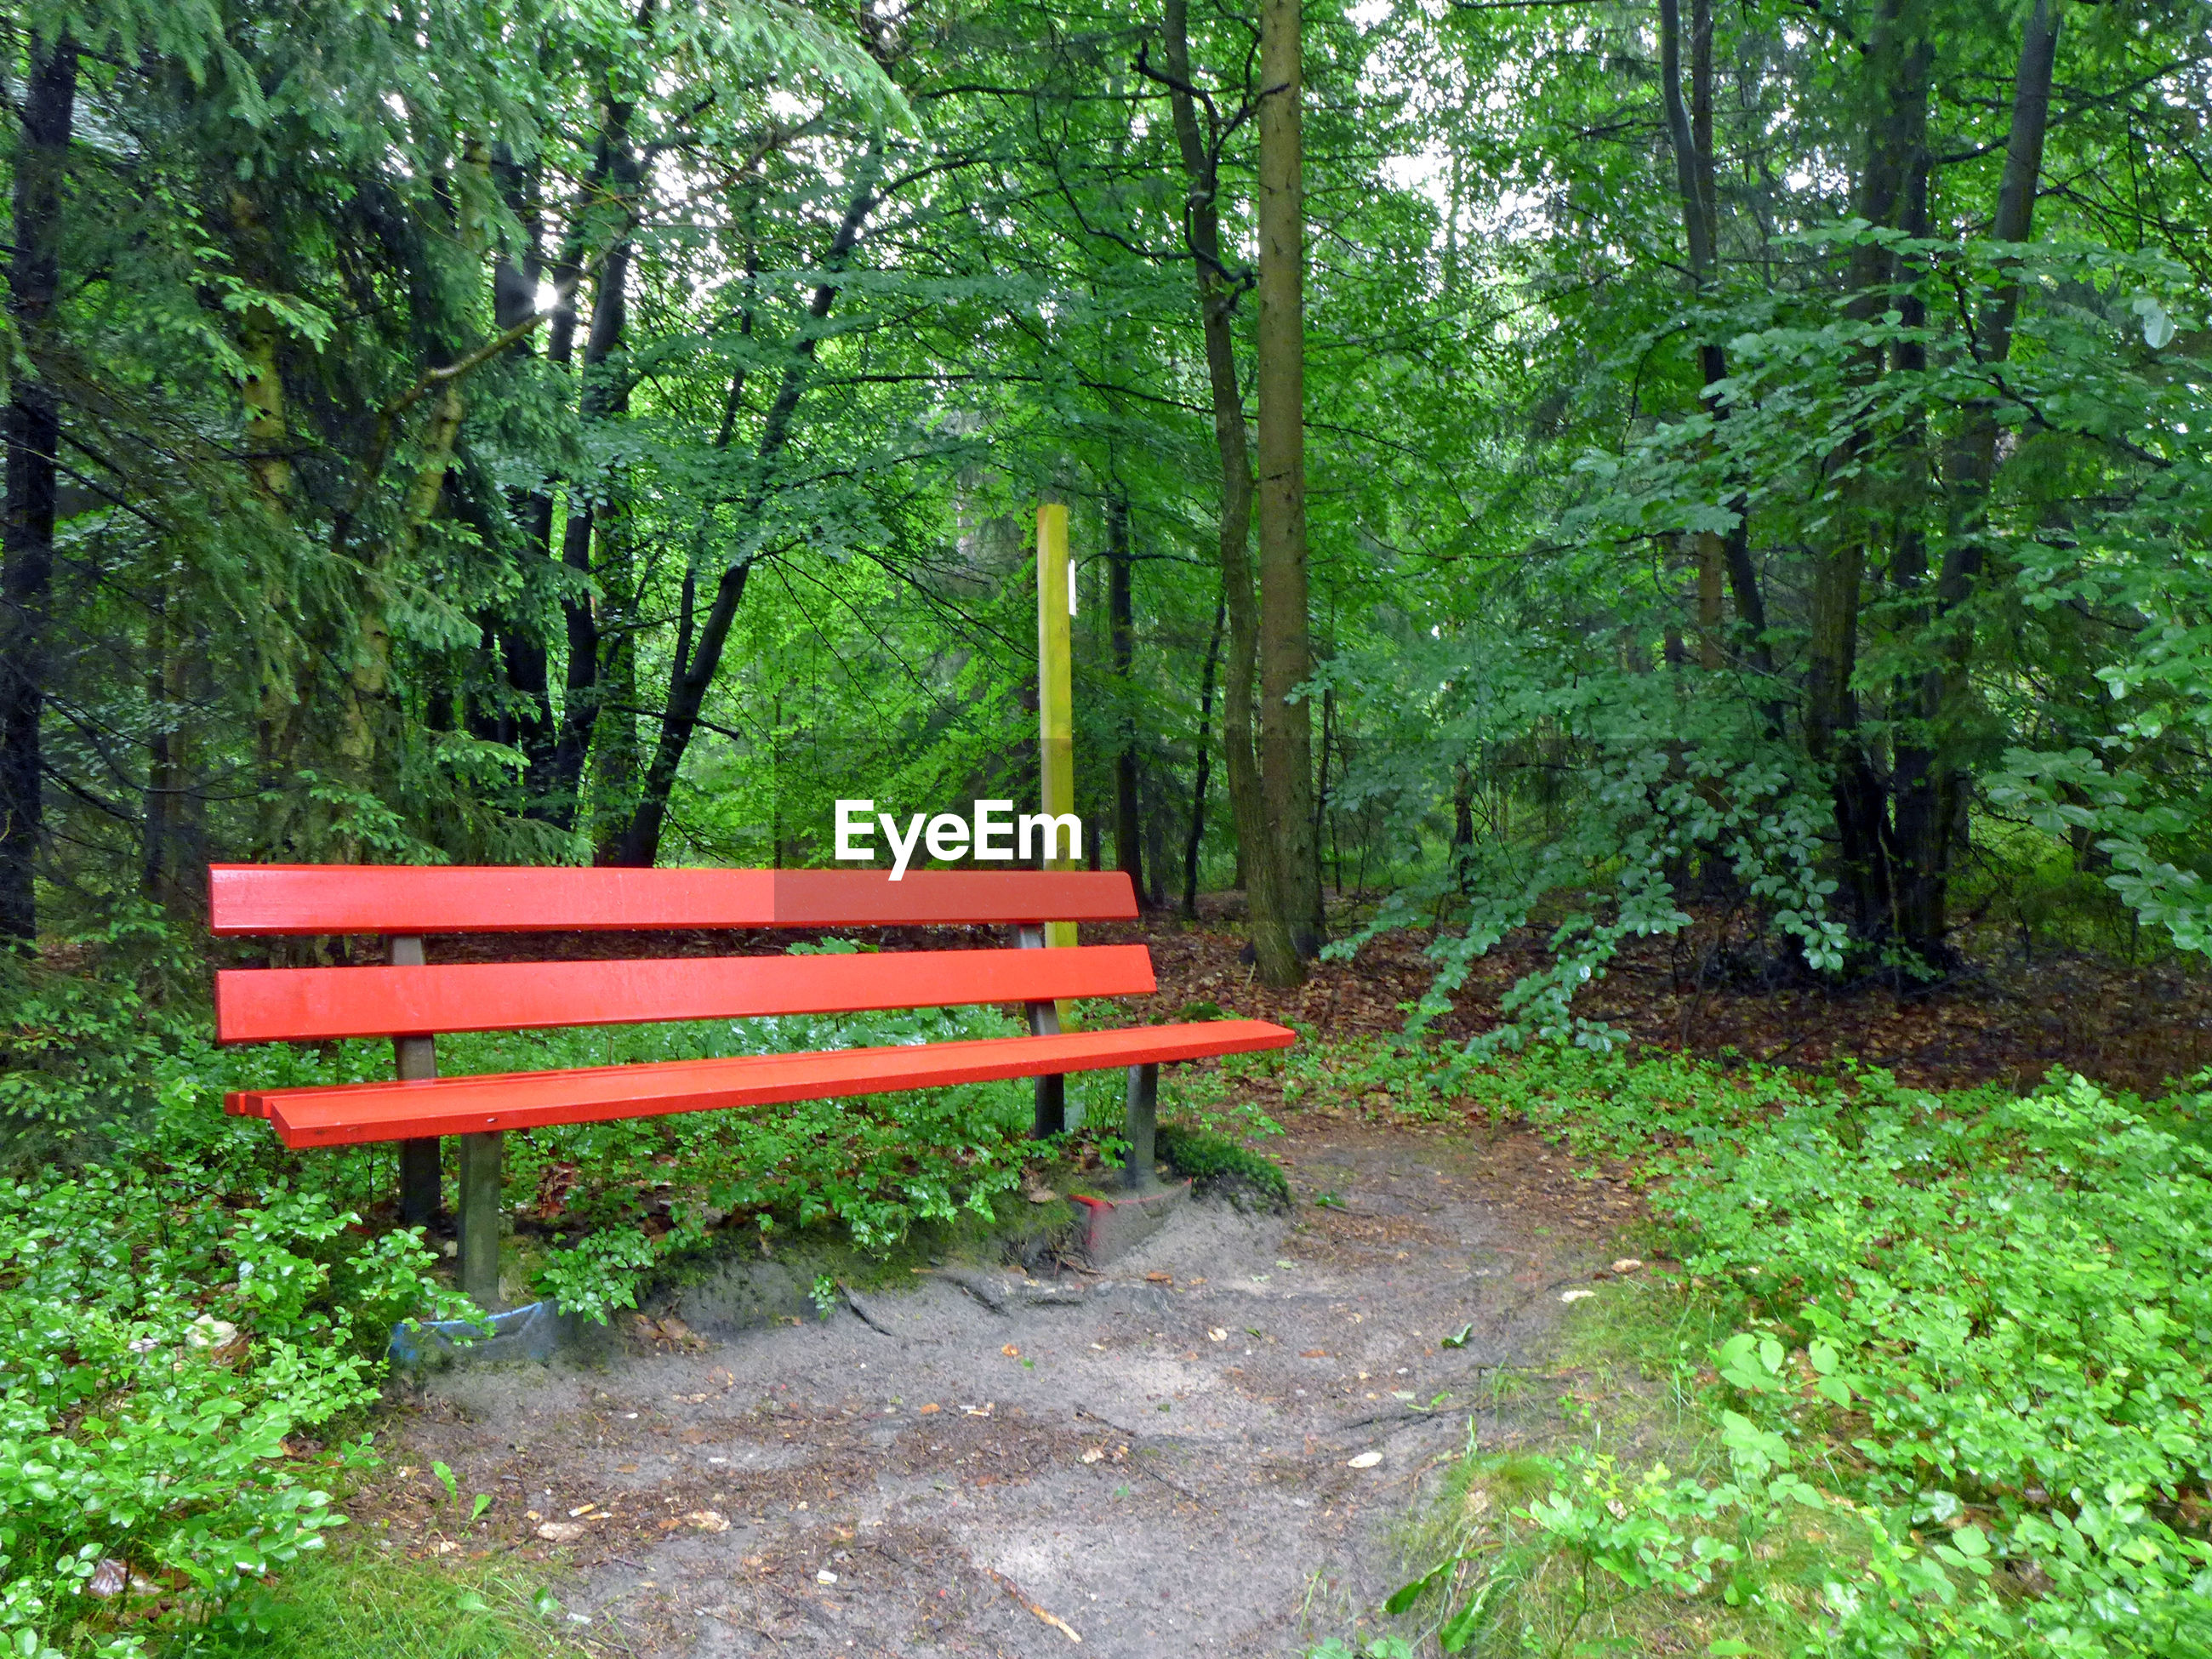 Empty bench against trees in forest